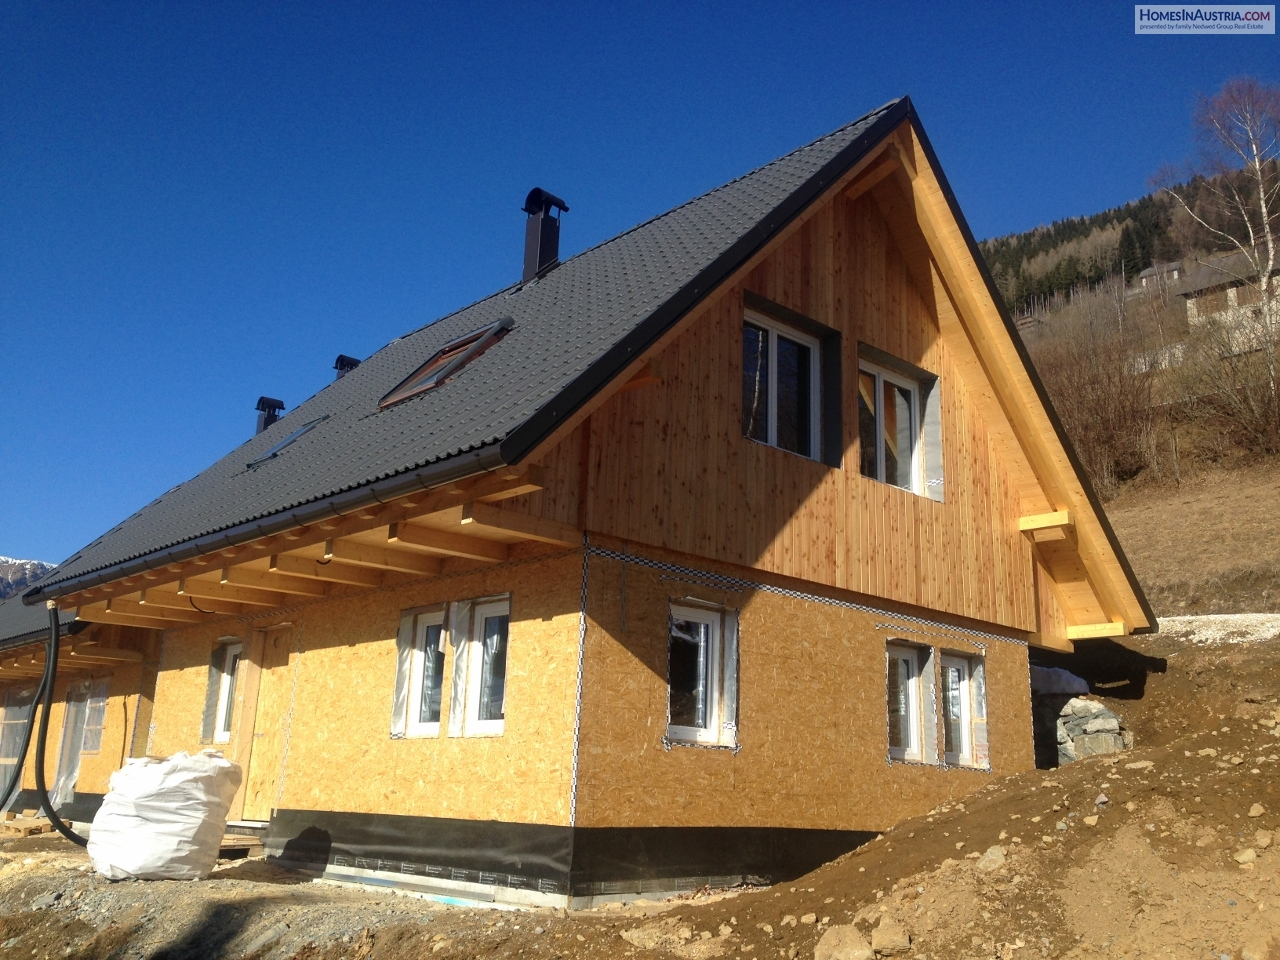 Kaning, Carinthia, Wooden Chalet, brand new construction, sunny, on the hillside